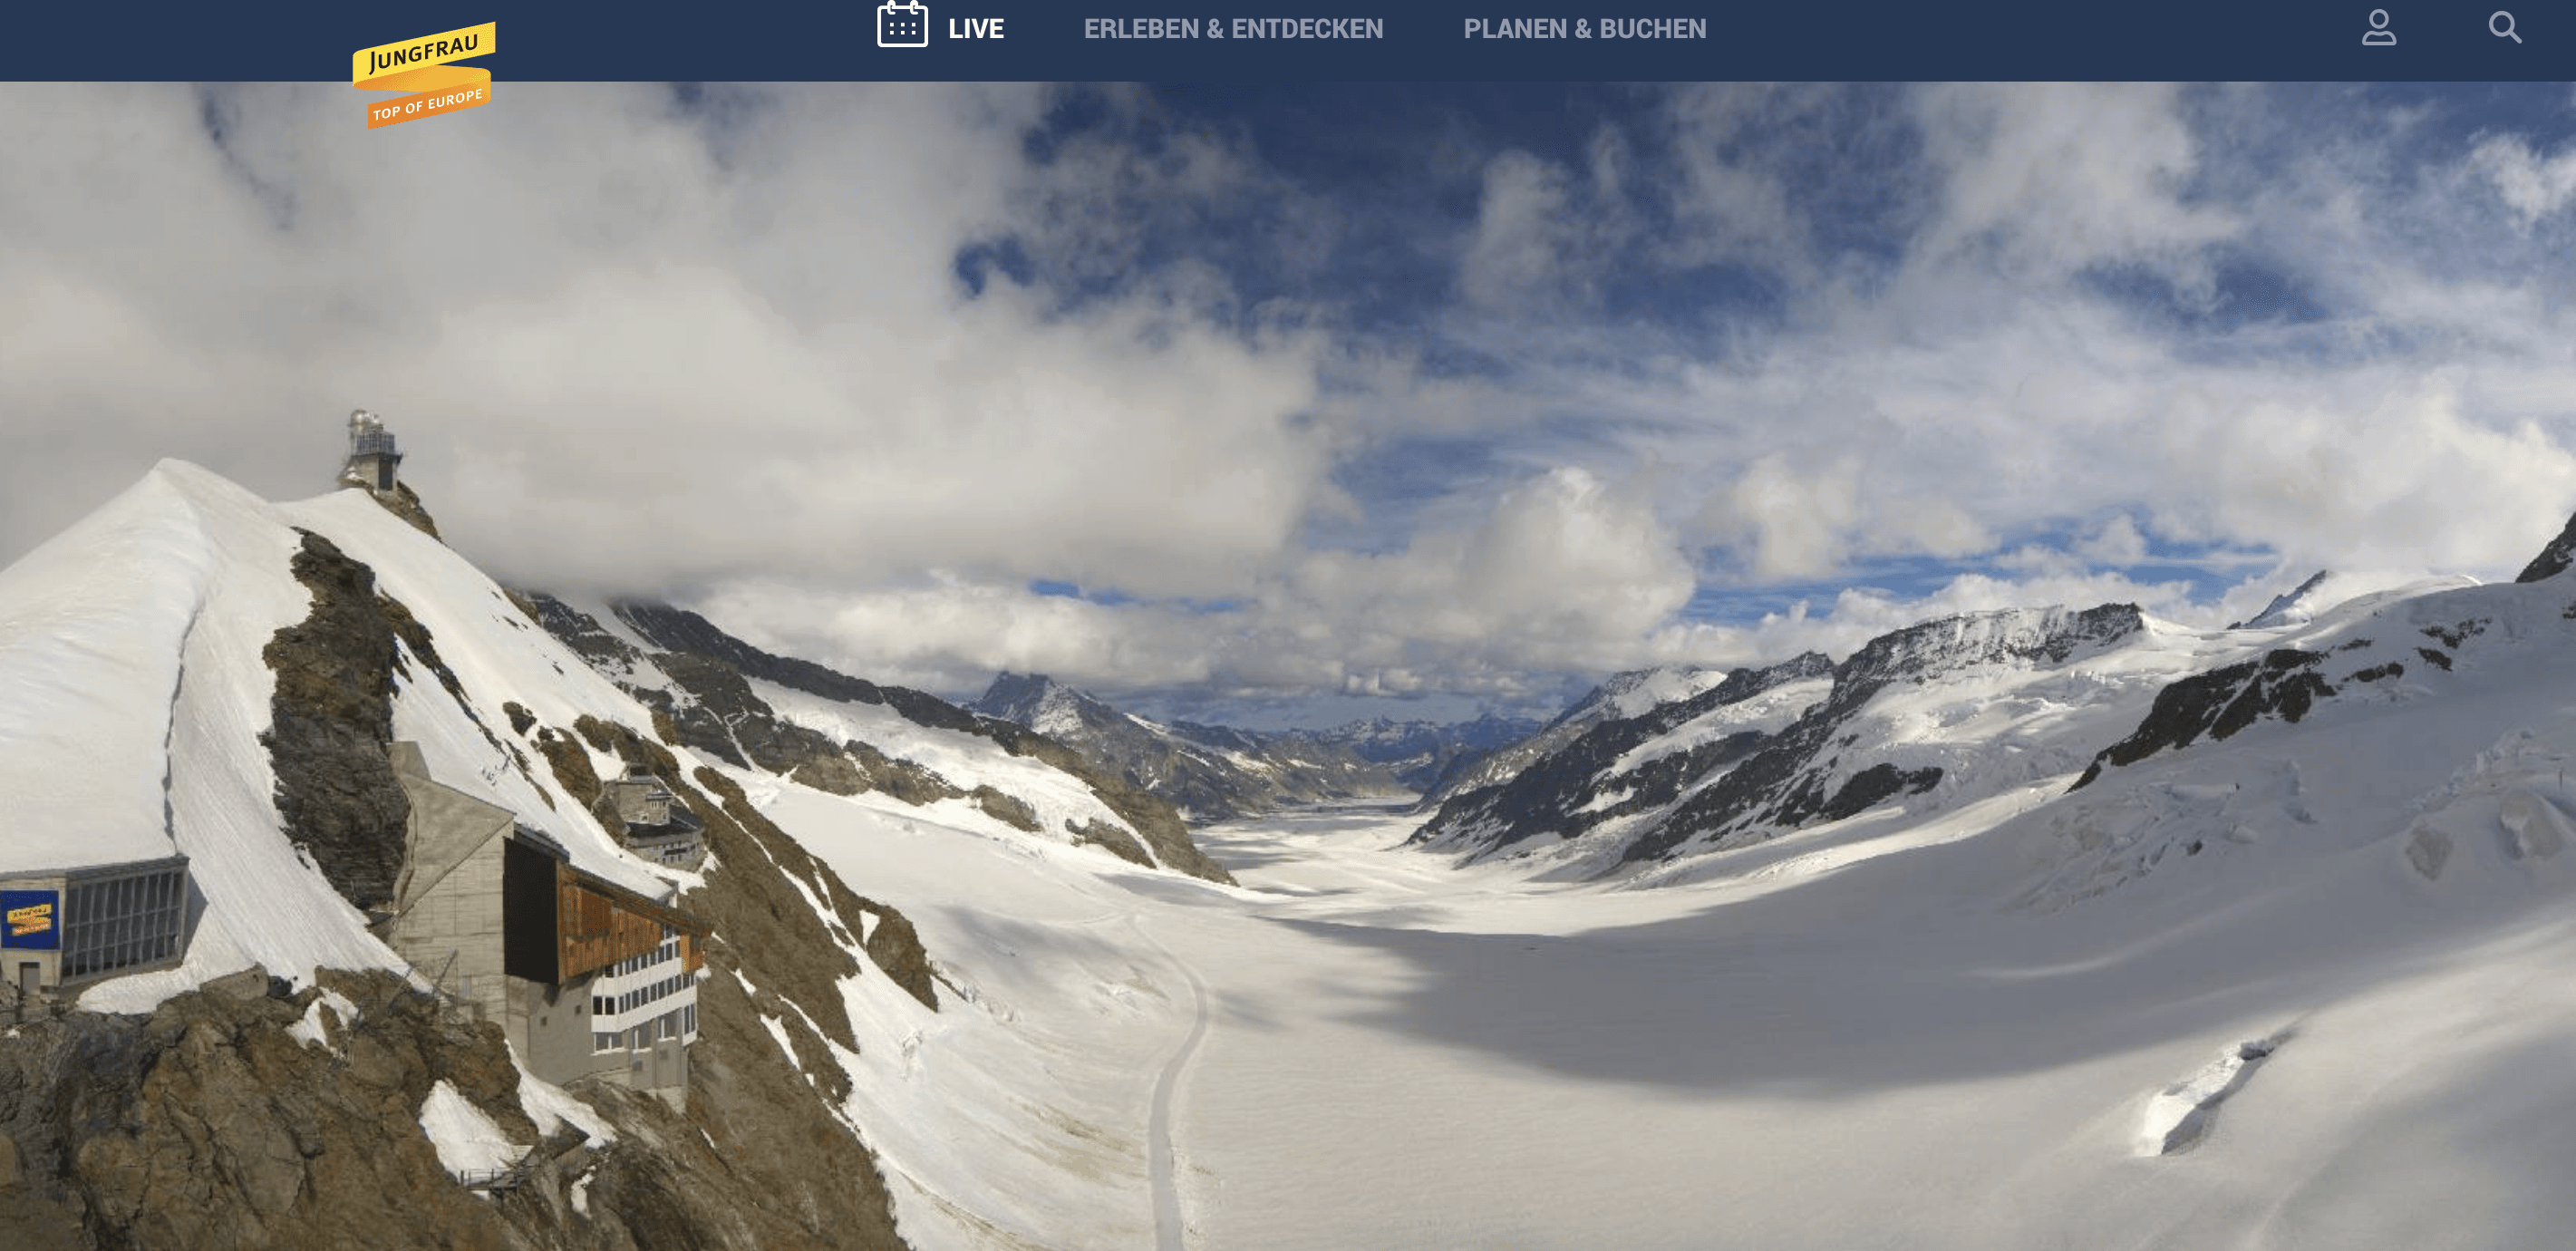 Jungfraujoch Webcam